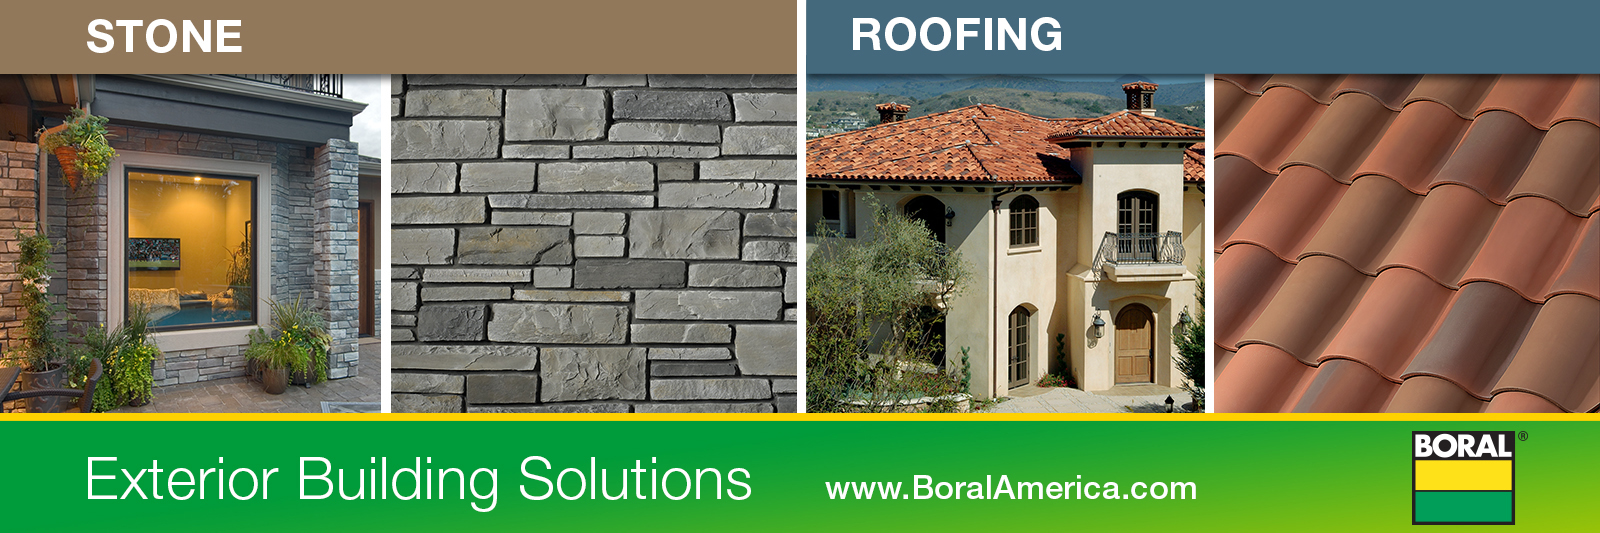 BIA-Banner-Stone-Roofing-1600X533.jpg